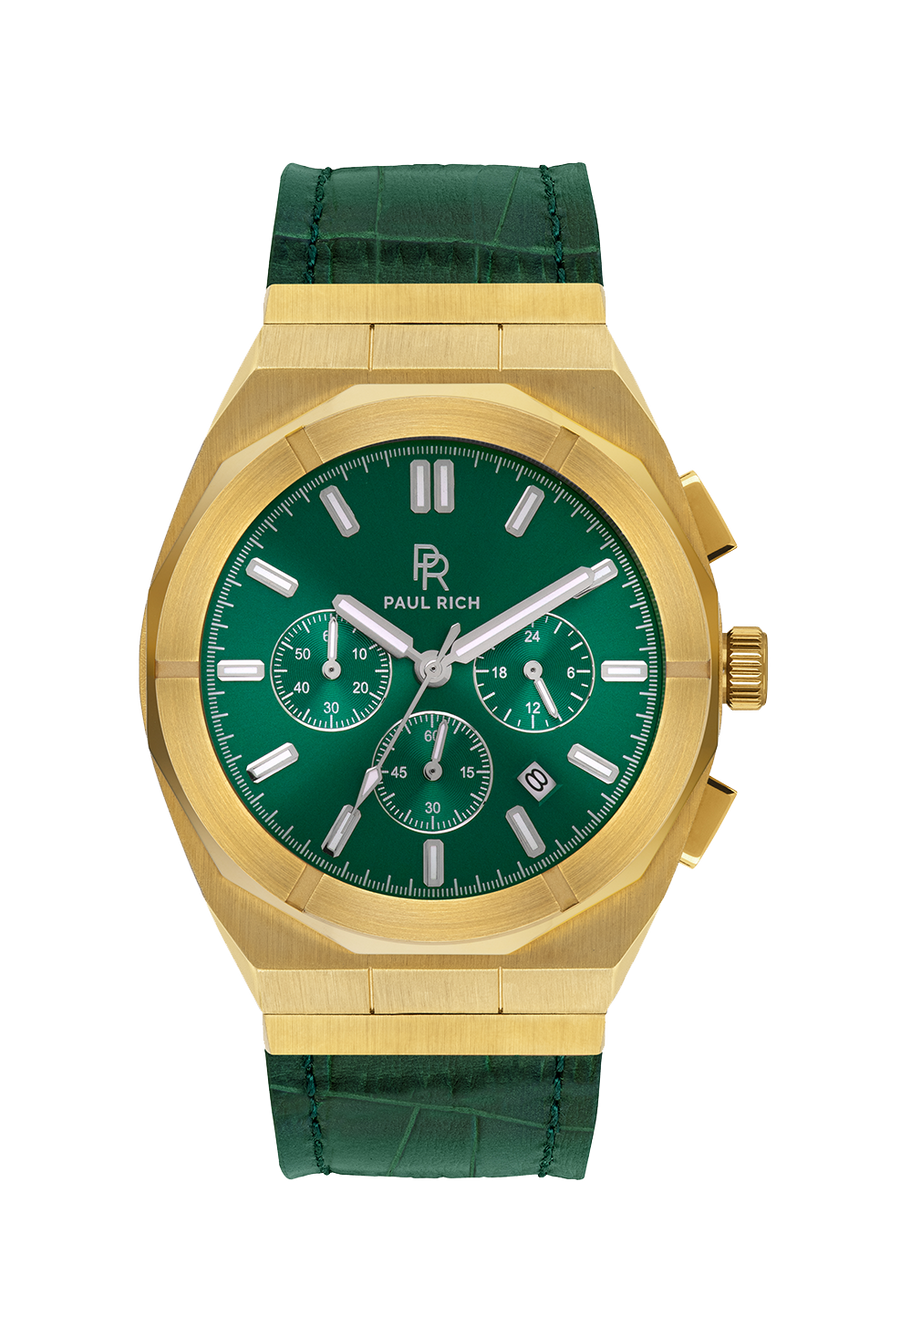 PAUL RICH MOTORSPORT - GREEN GOLD LEATHER